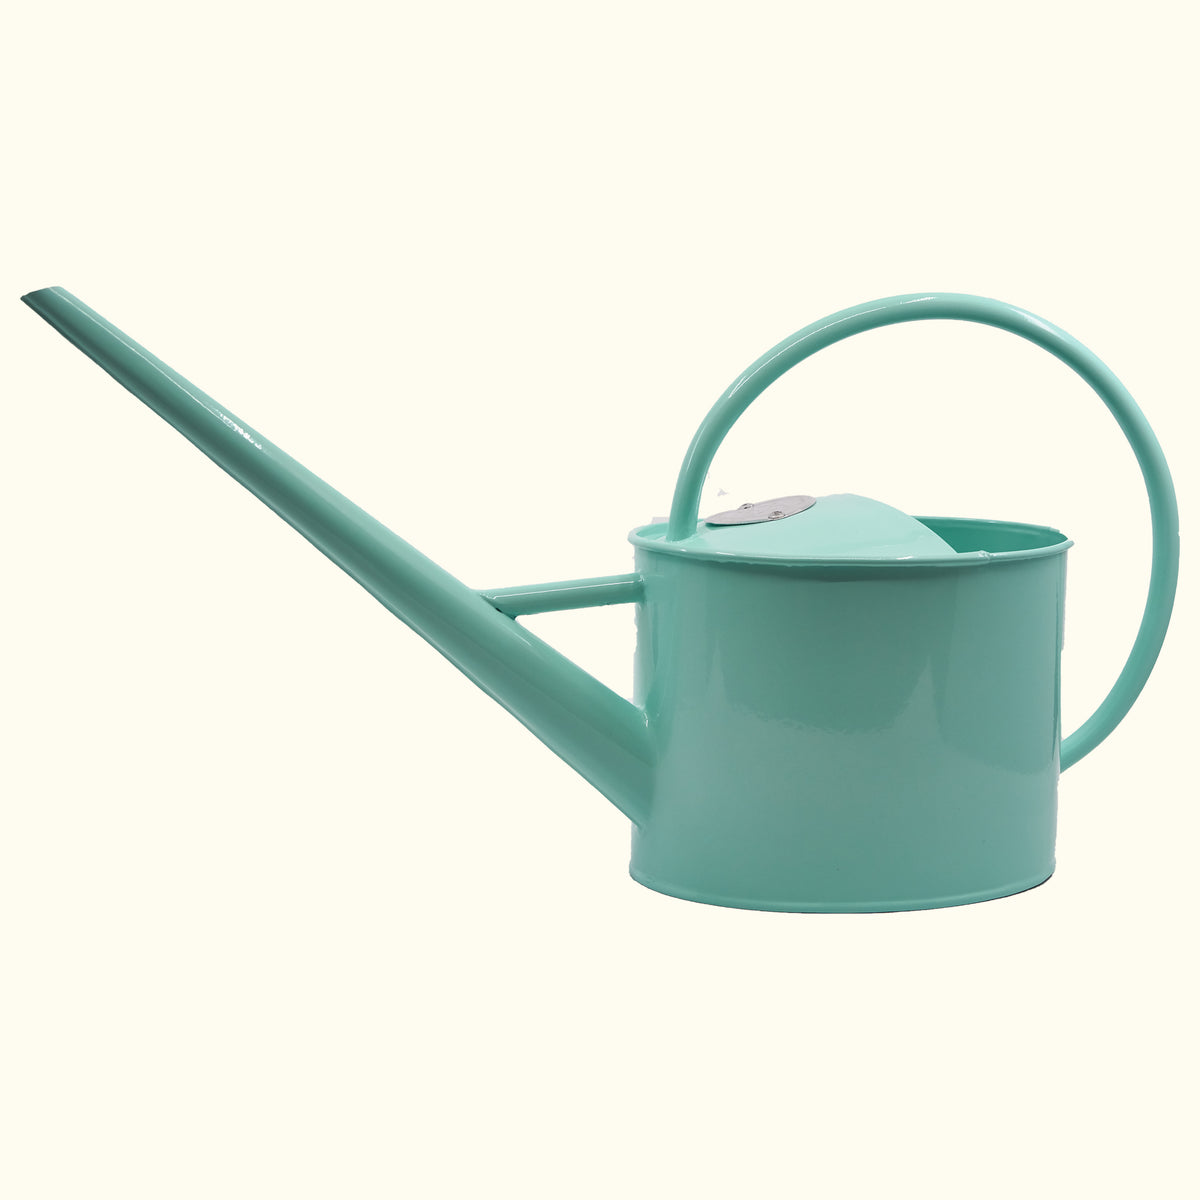 Sophie Conran Watering Can Blue 1.7 litres